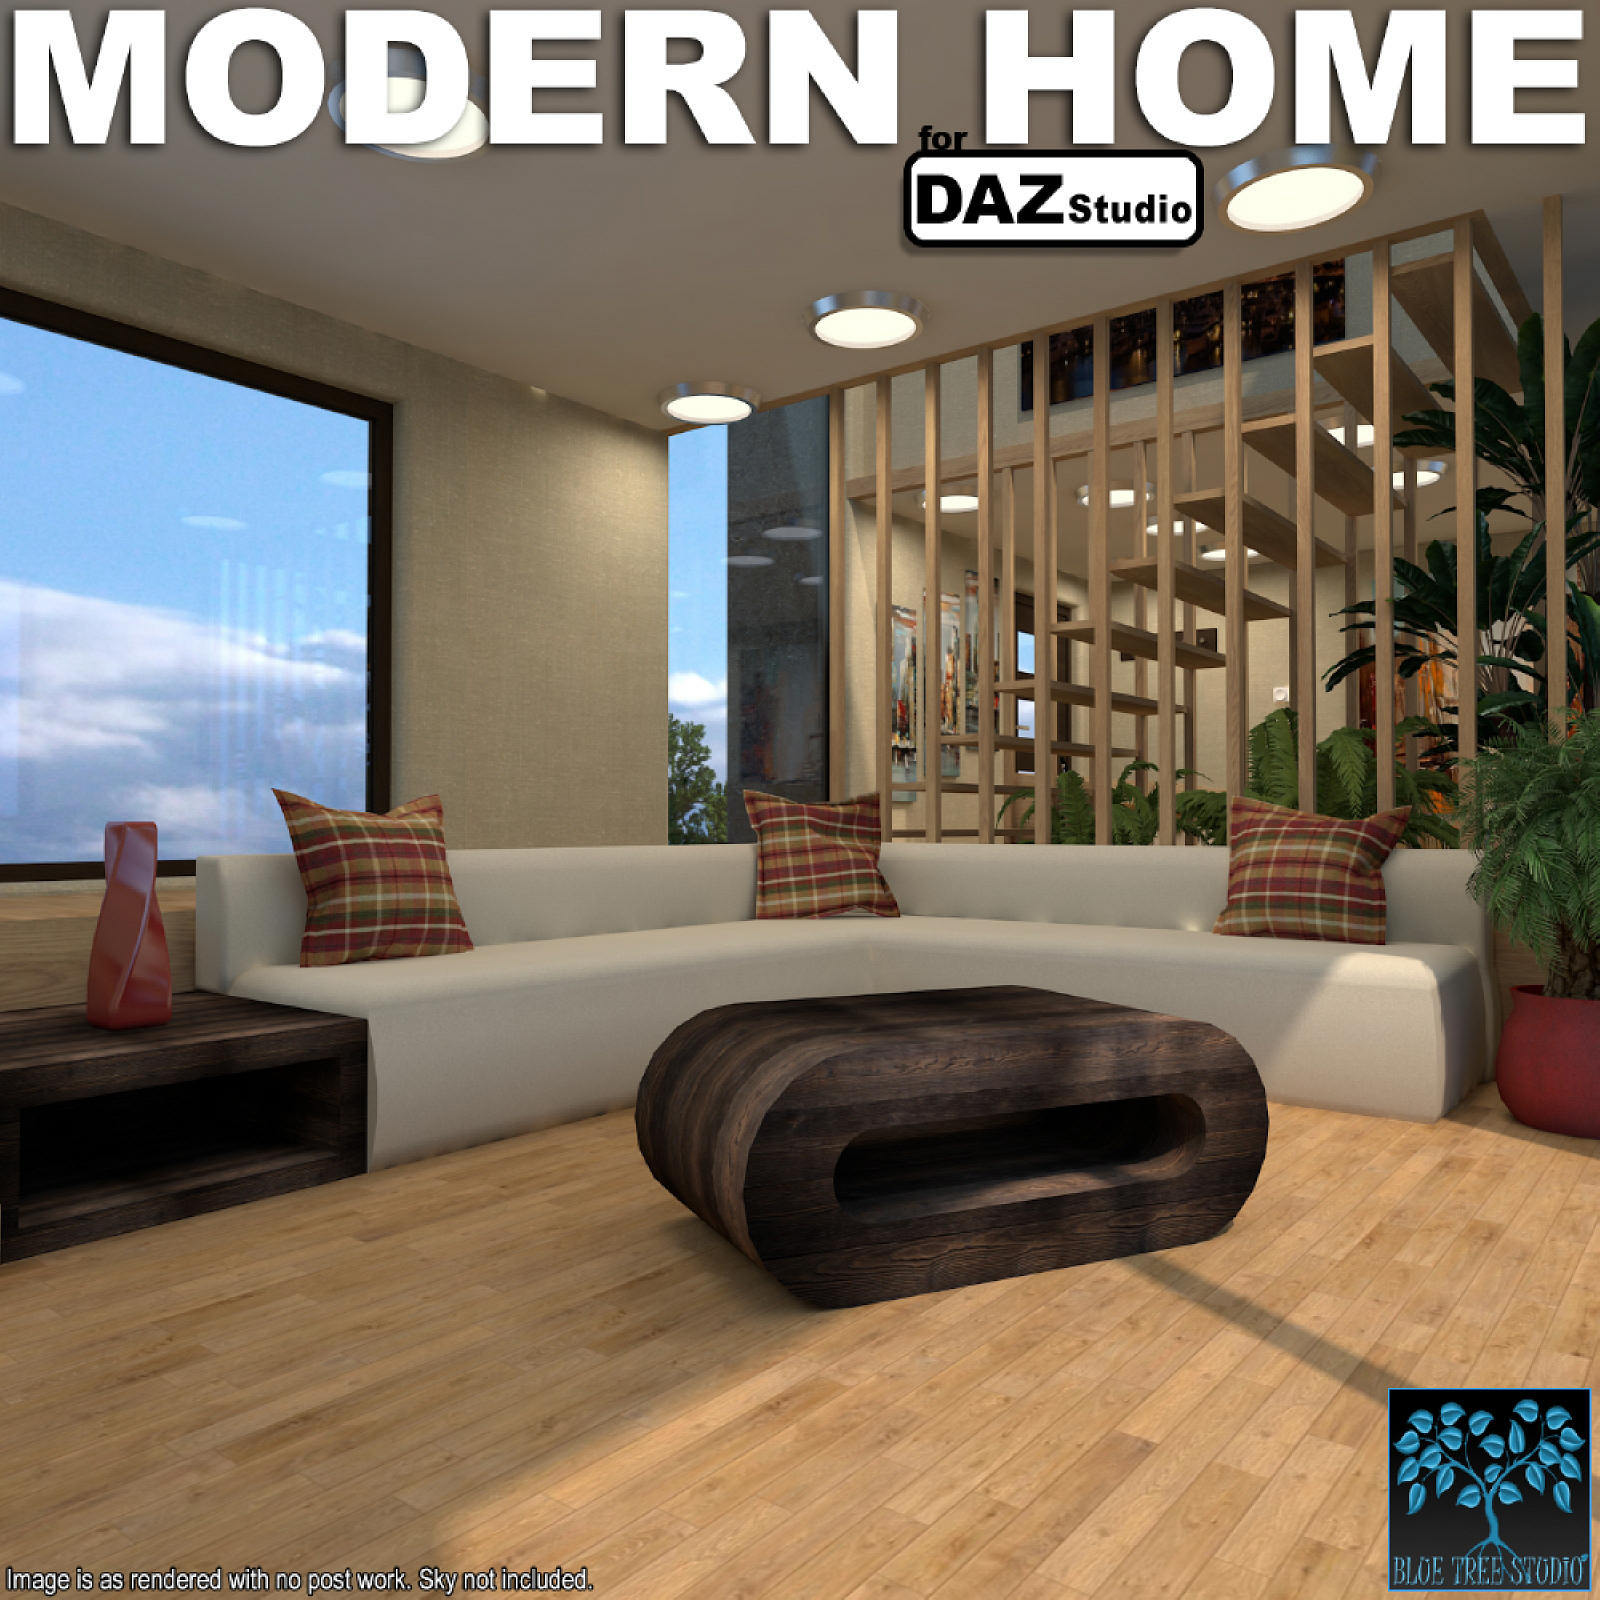 Modern Home for Daz Studio by BlueTreeStudio